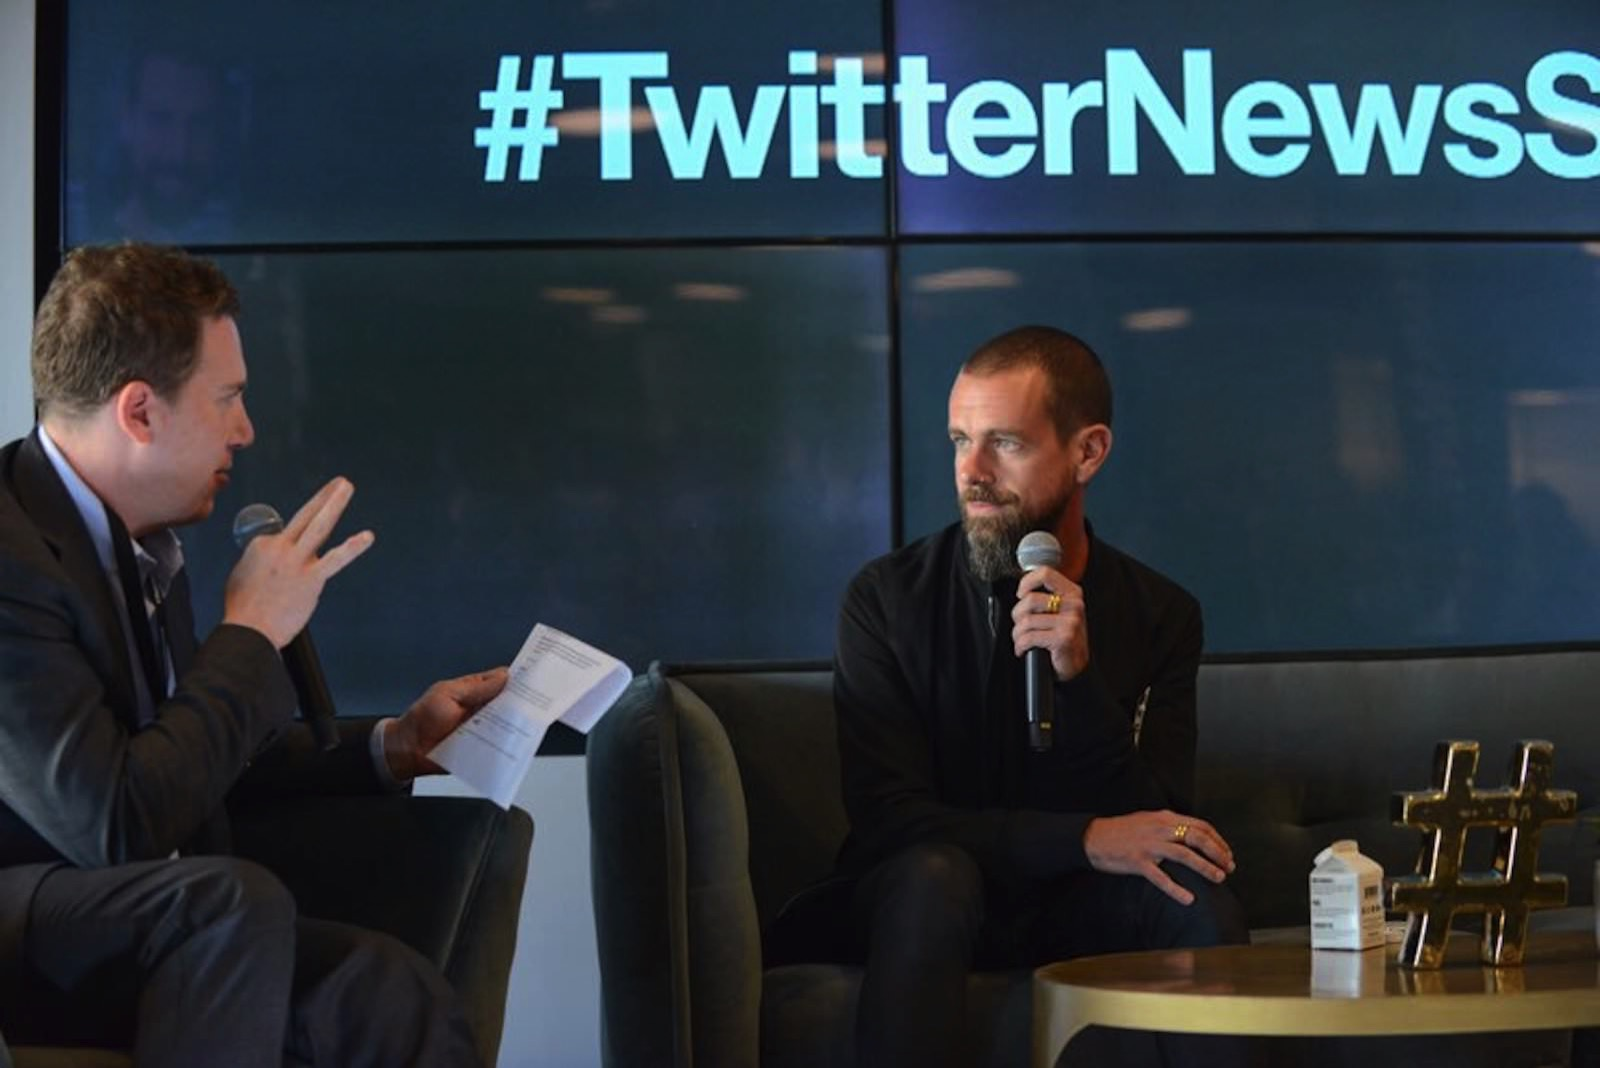 Twitter is bringing back some of its api